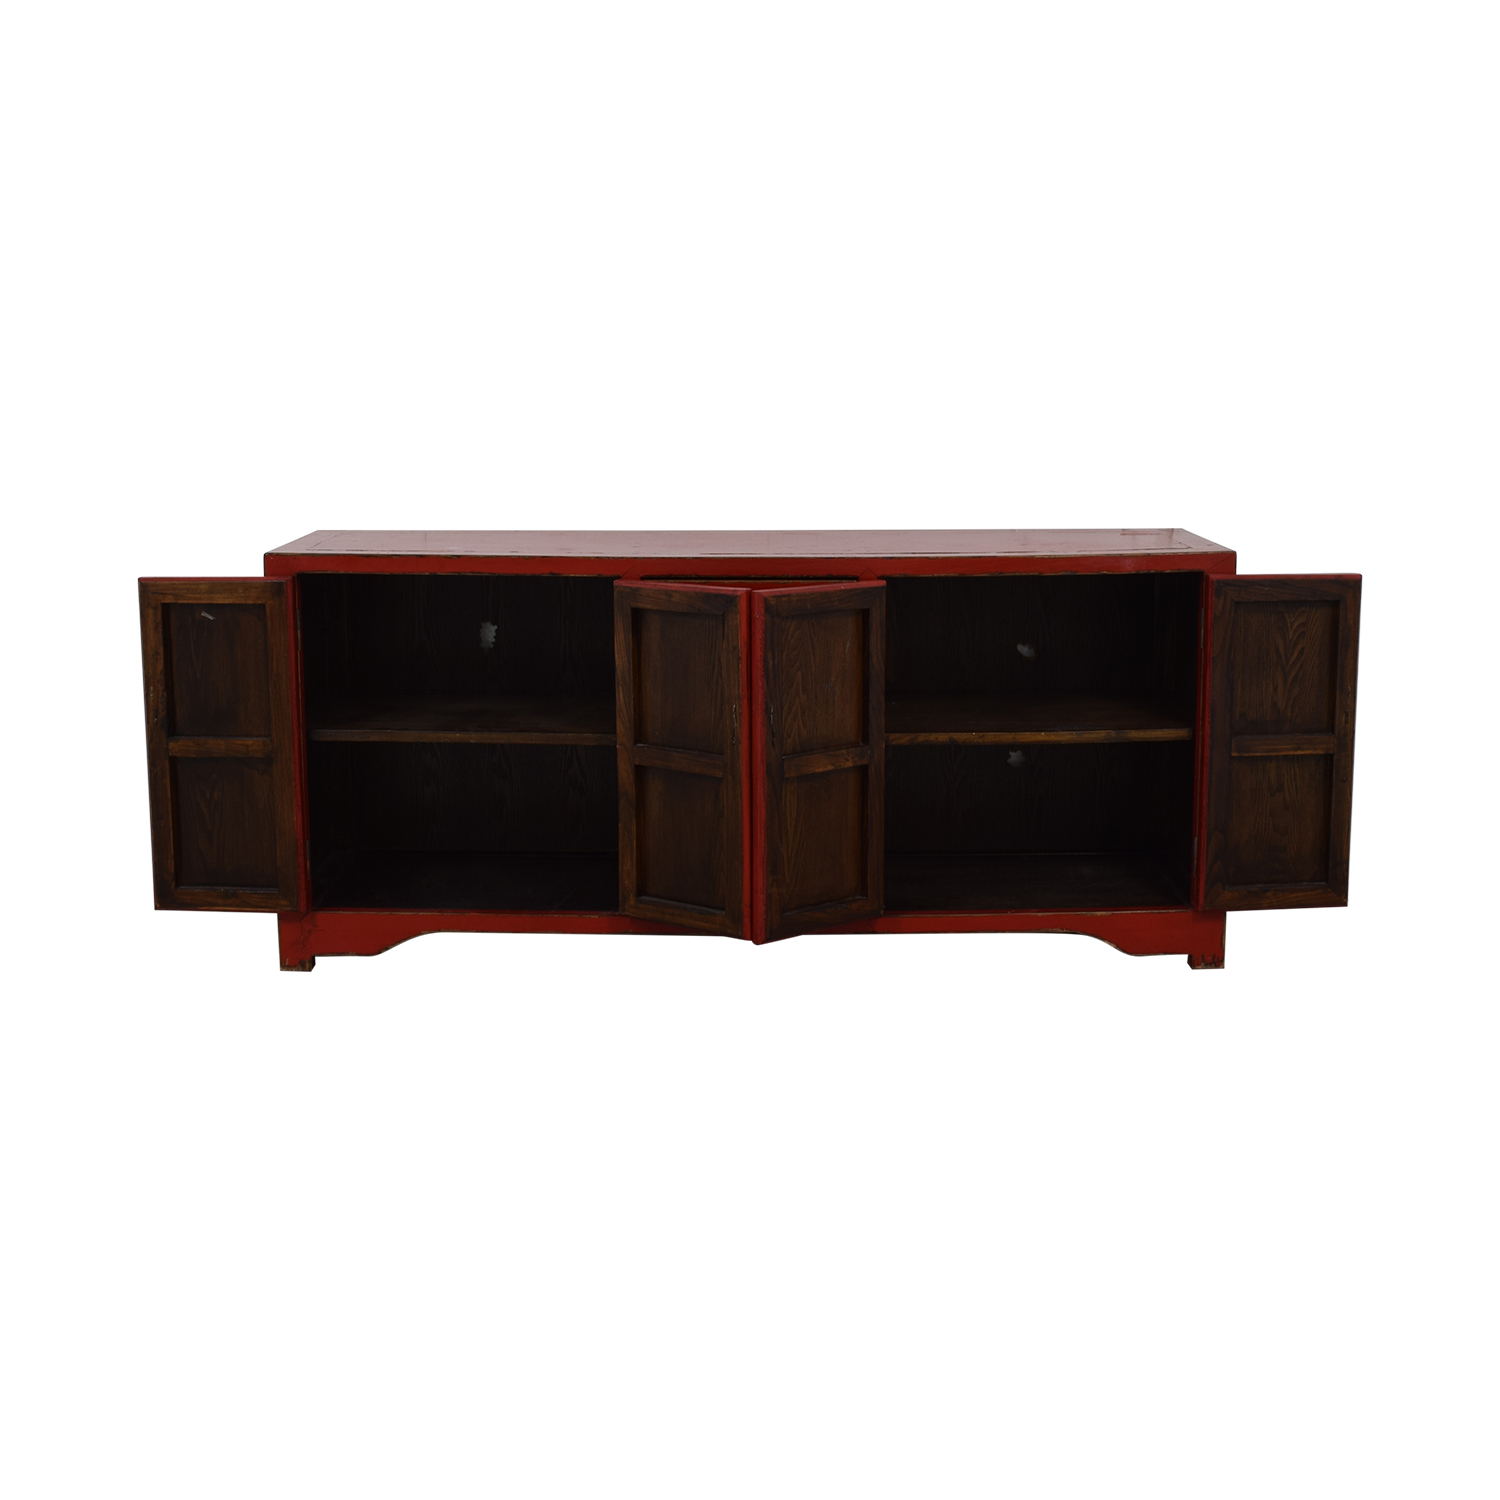 Red Sideboard or Cabinet discount